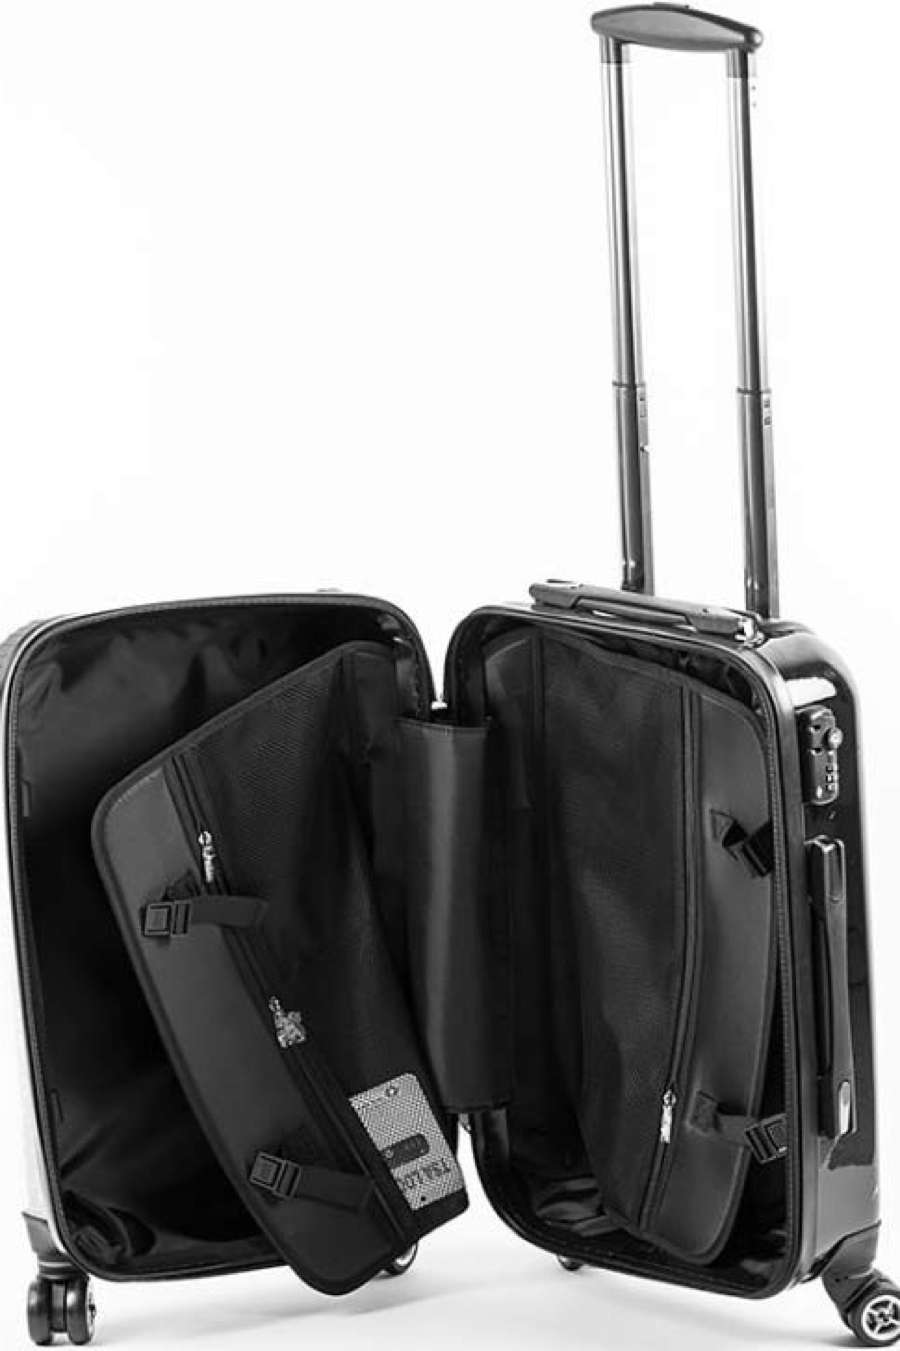 Personalised Initial Black Suitcase - Small Cabin Luggage - 1